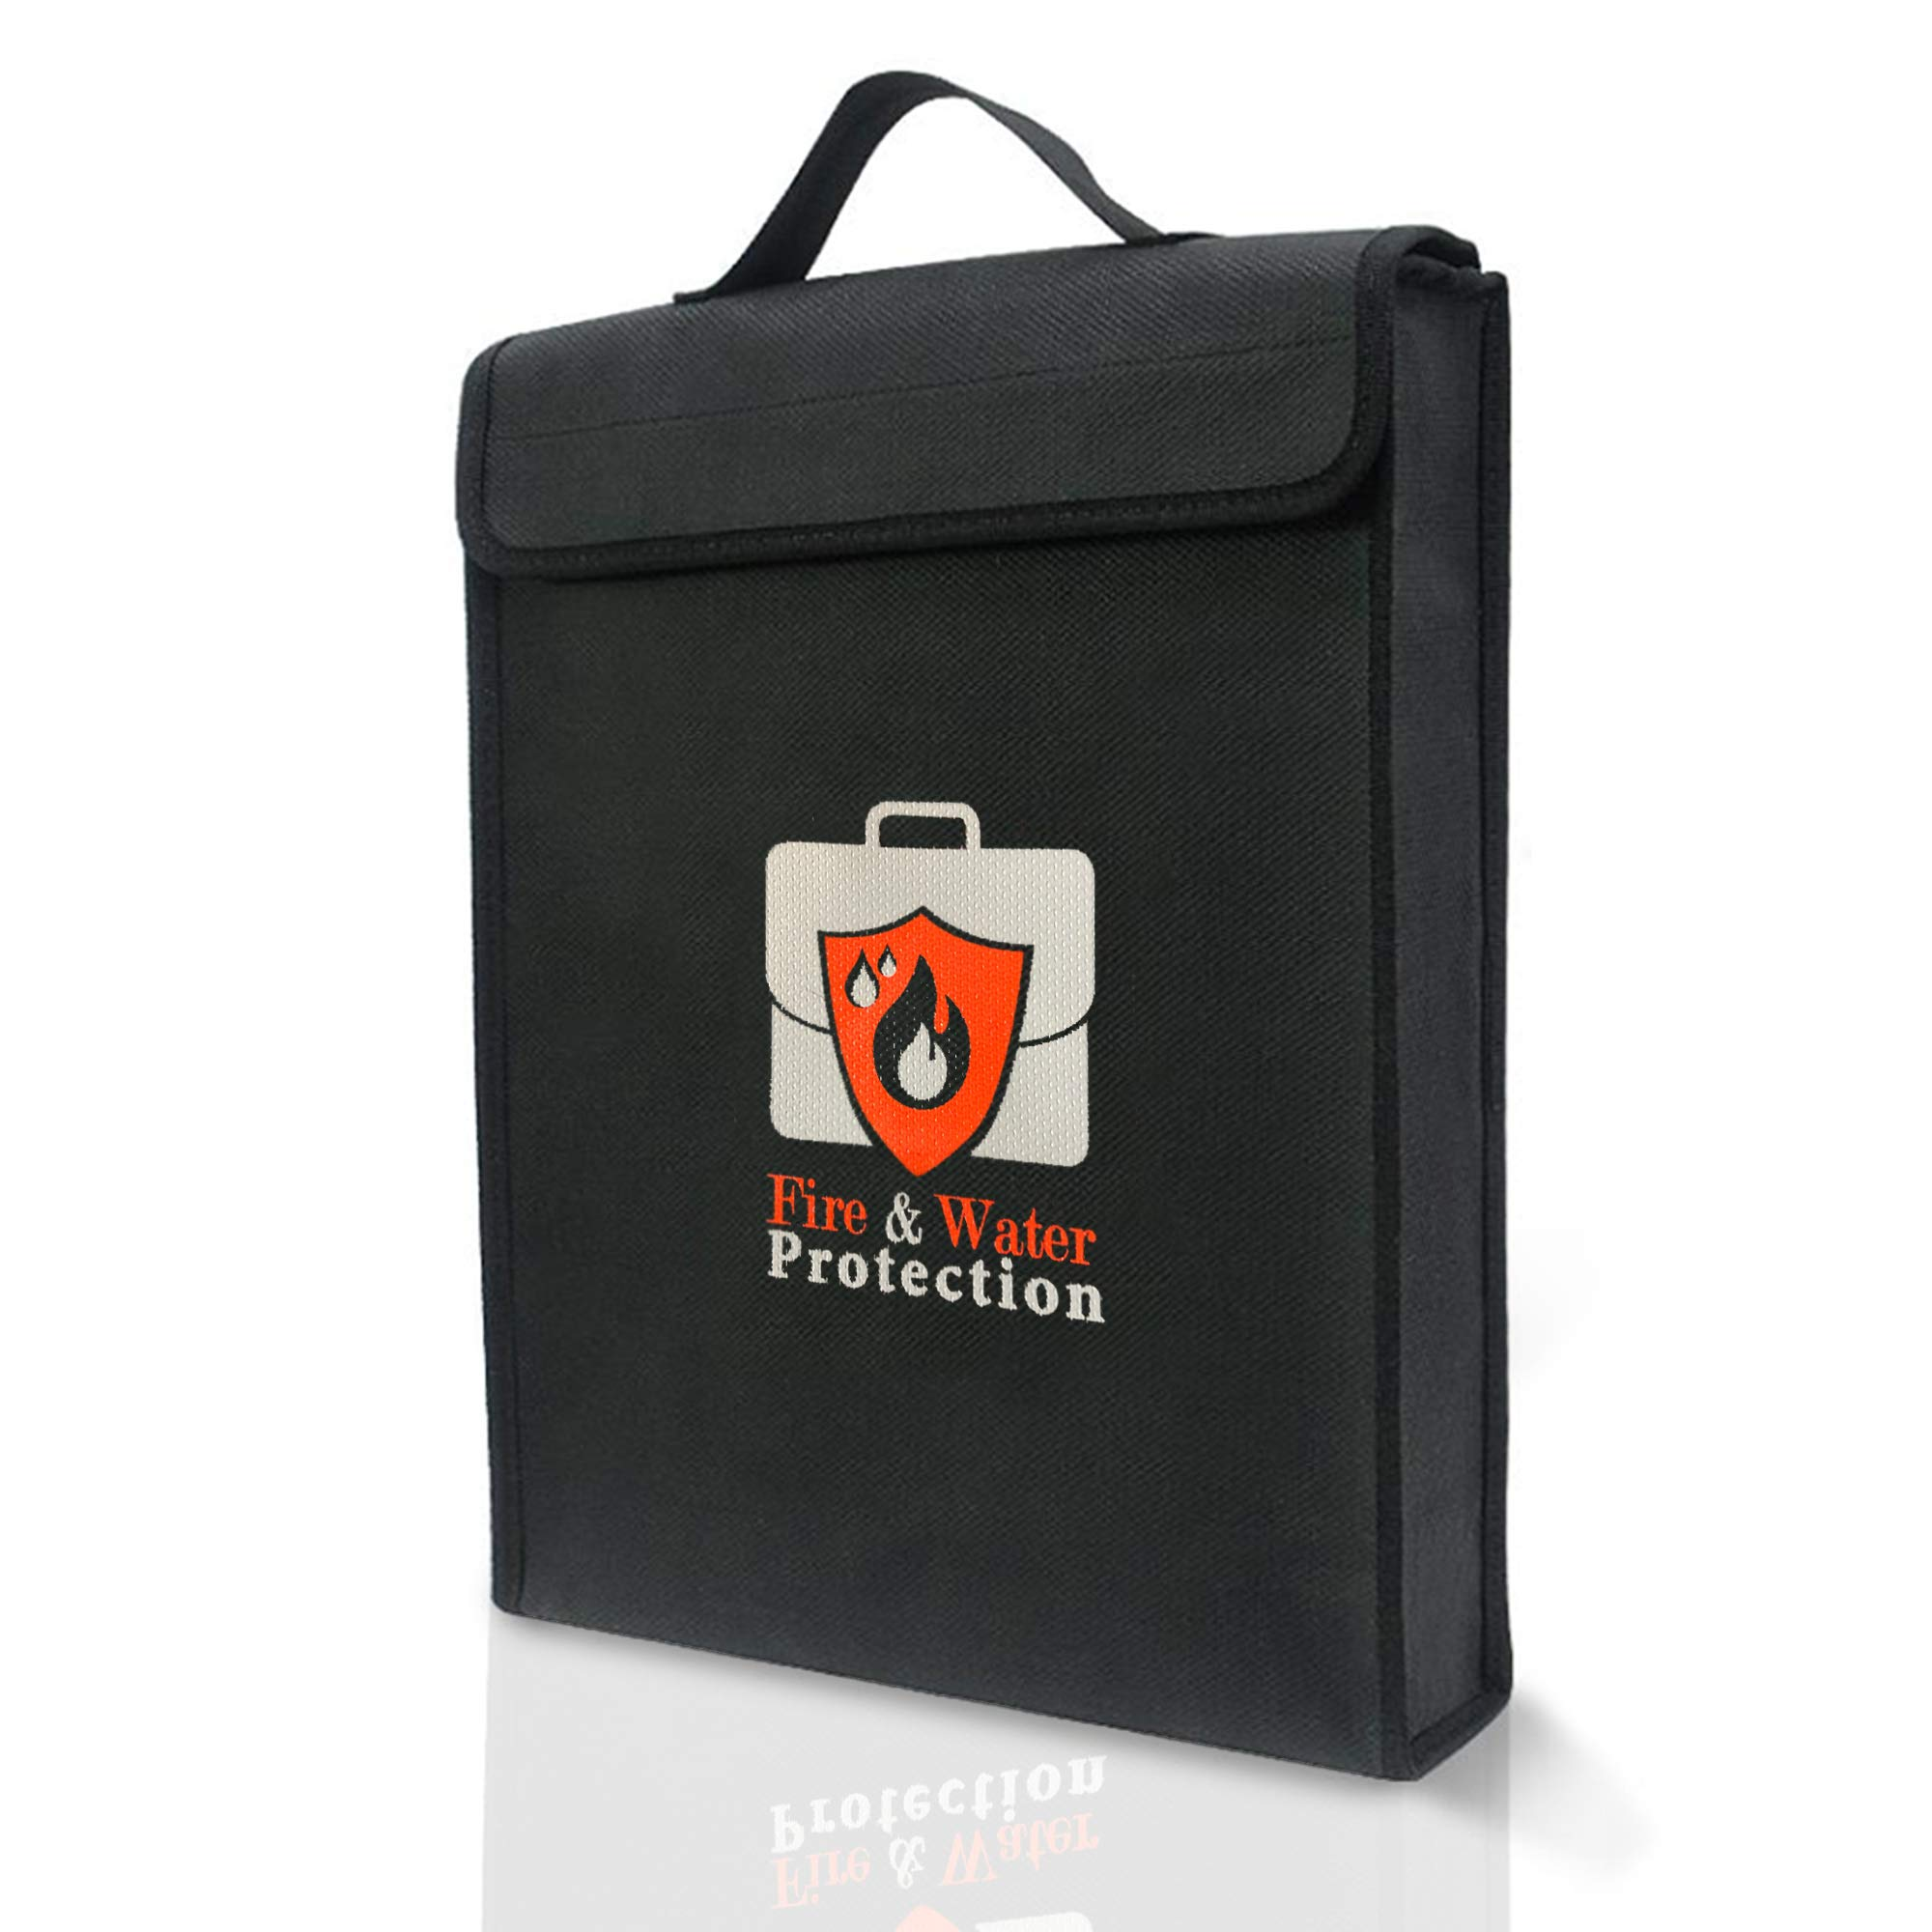 Docu-Protect Premium Fireproof Document Bag   Fire Safe Document Holder   15'' x 11'' x 1.5''   Non Itchy by Docu-Protect